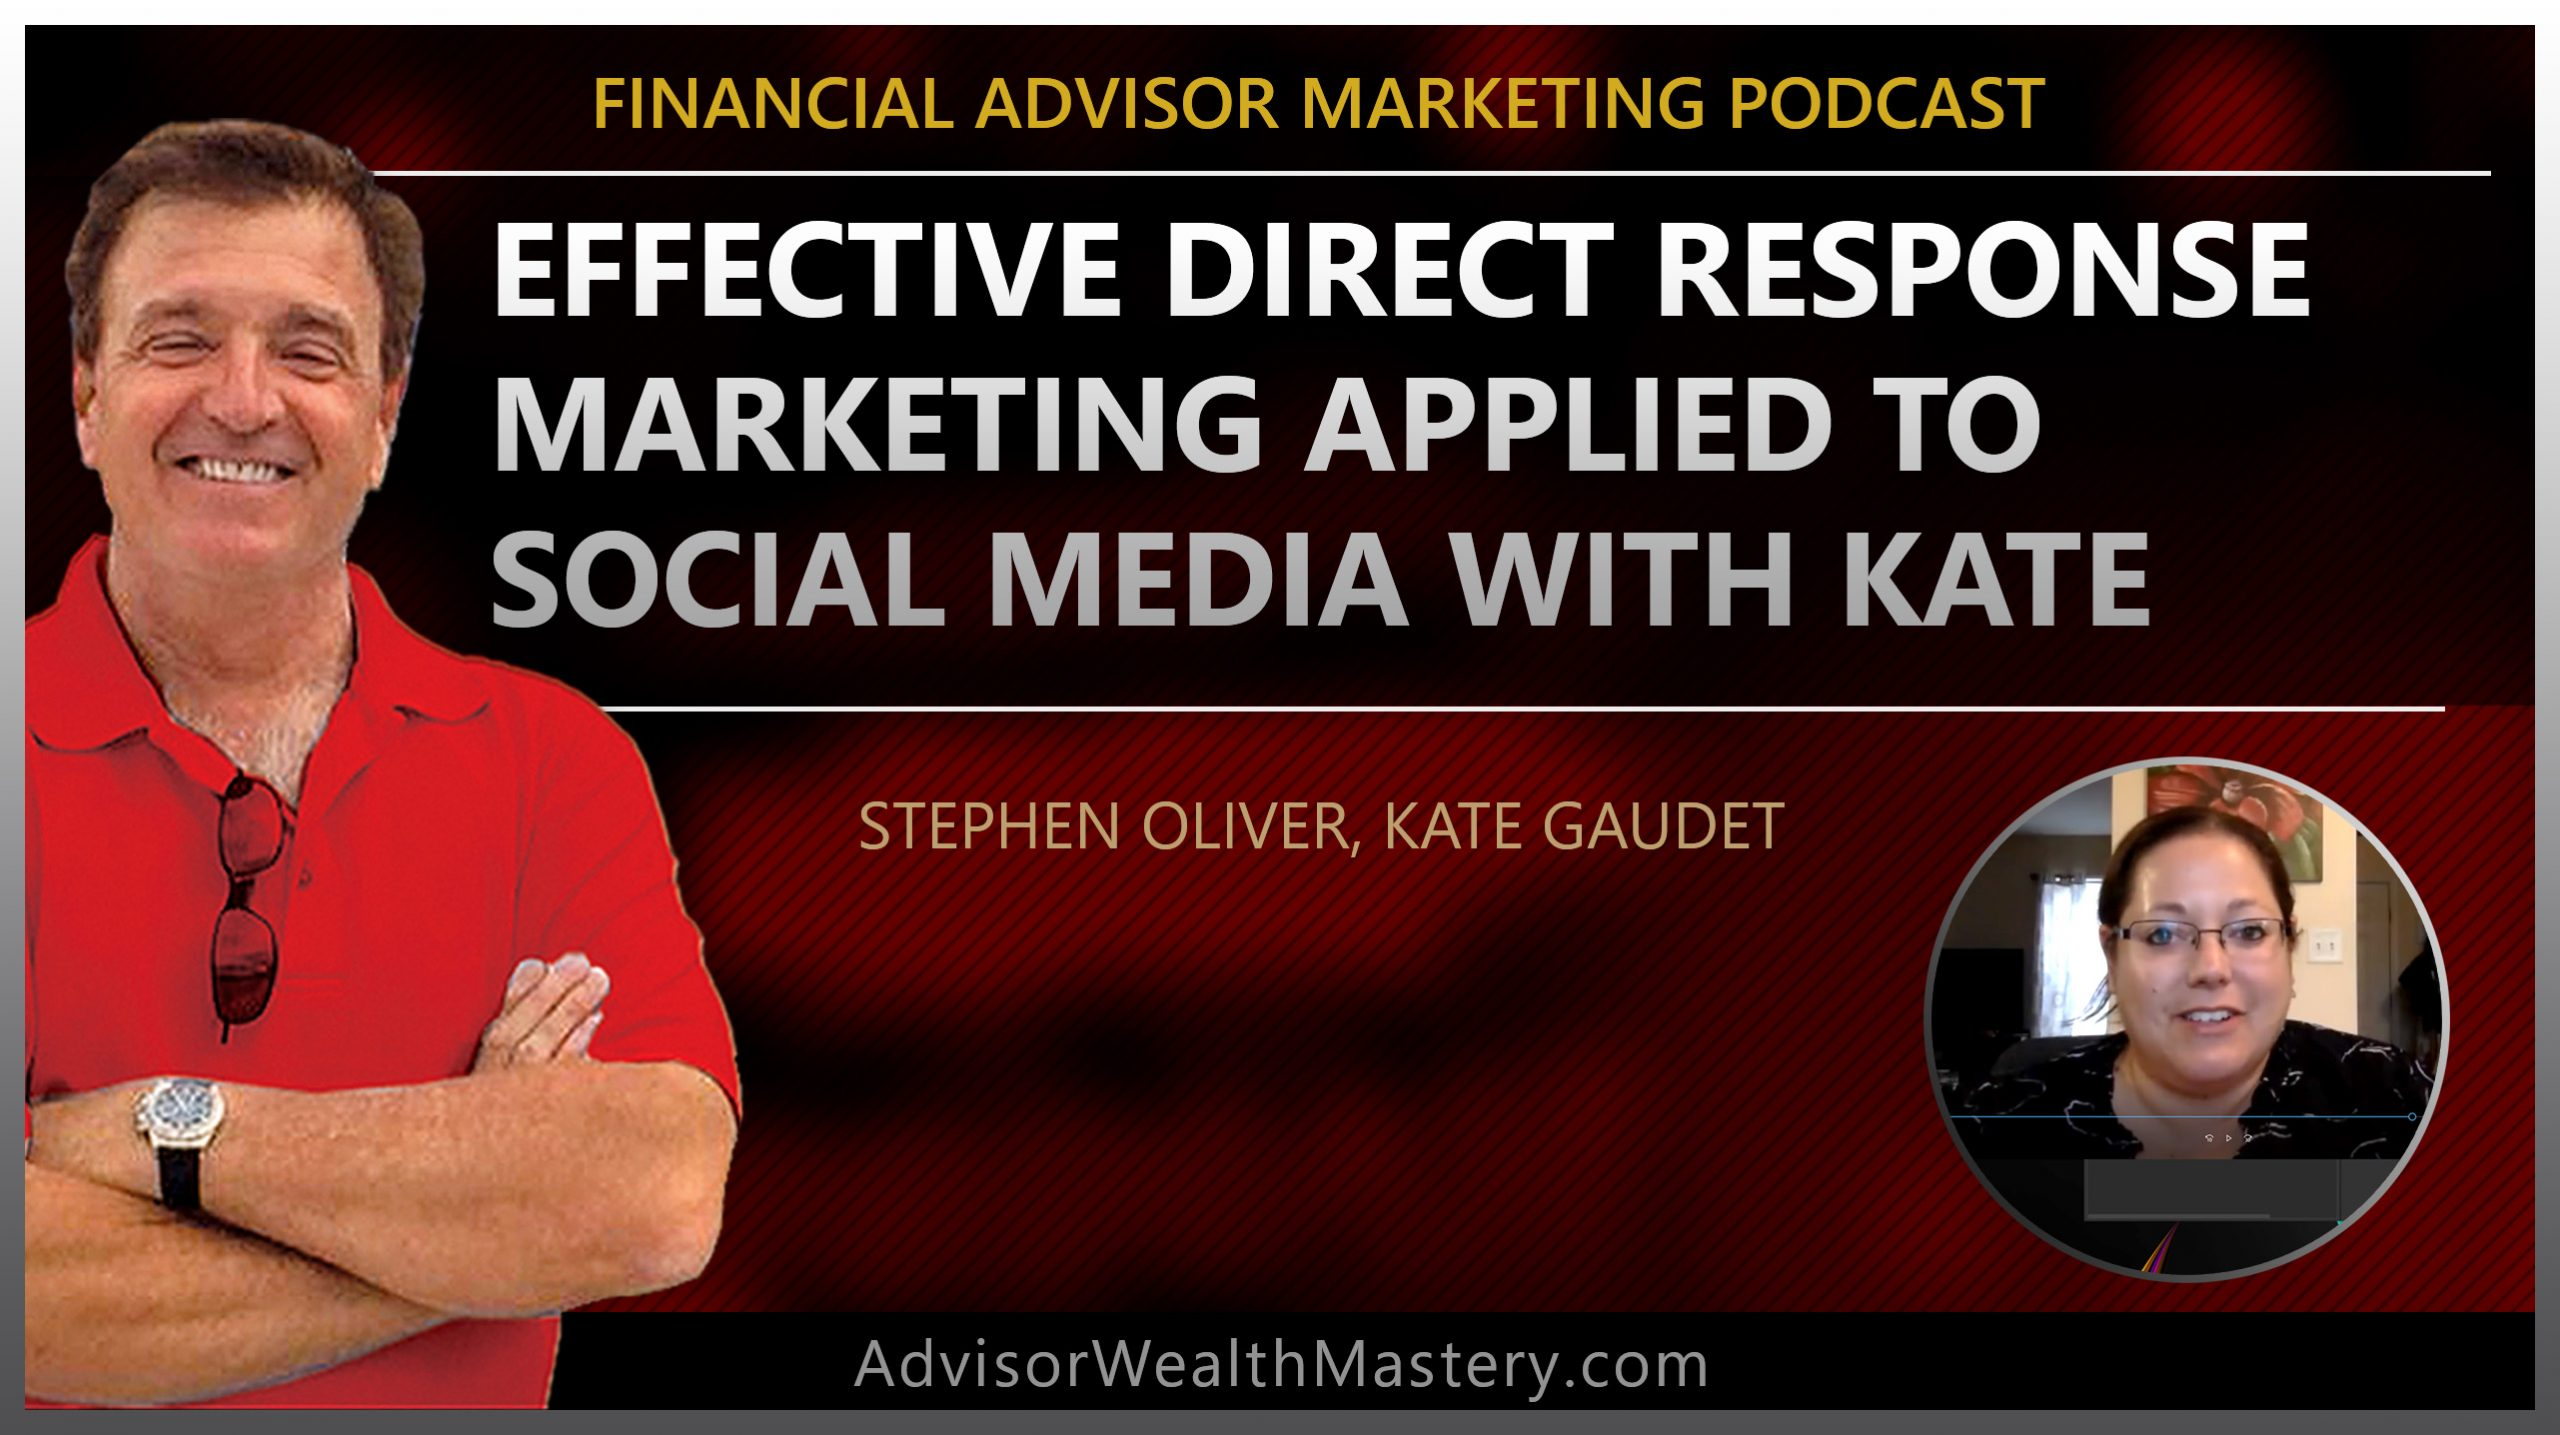 Effective Direct Response Marketing Applied to Social Media with Kate and Stephen